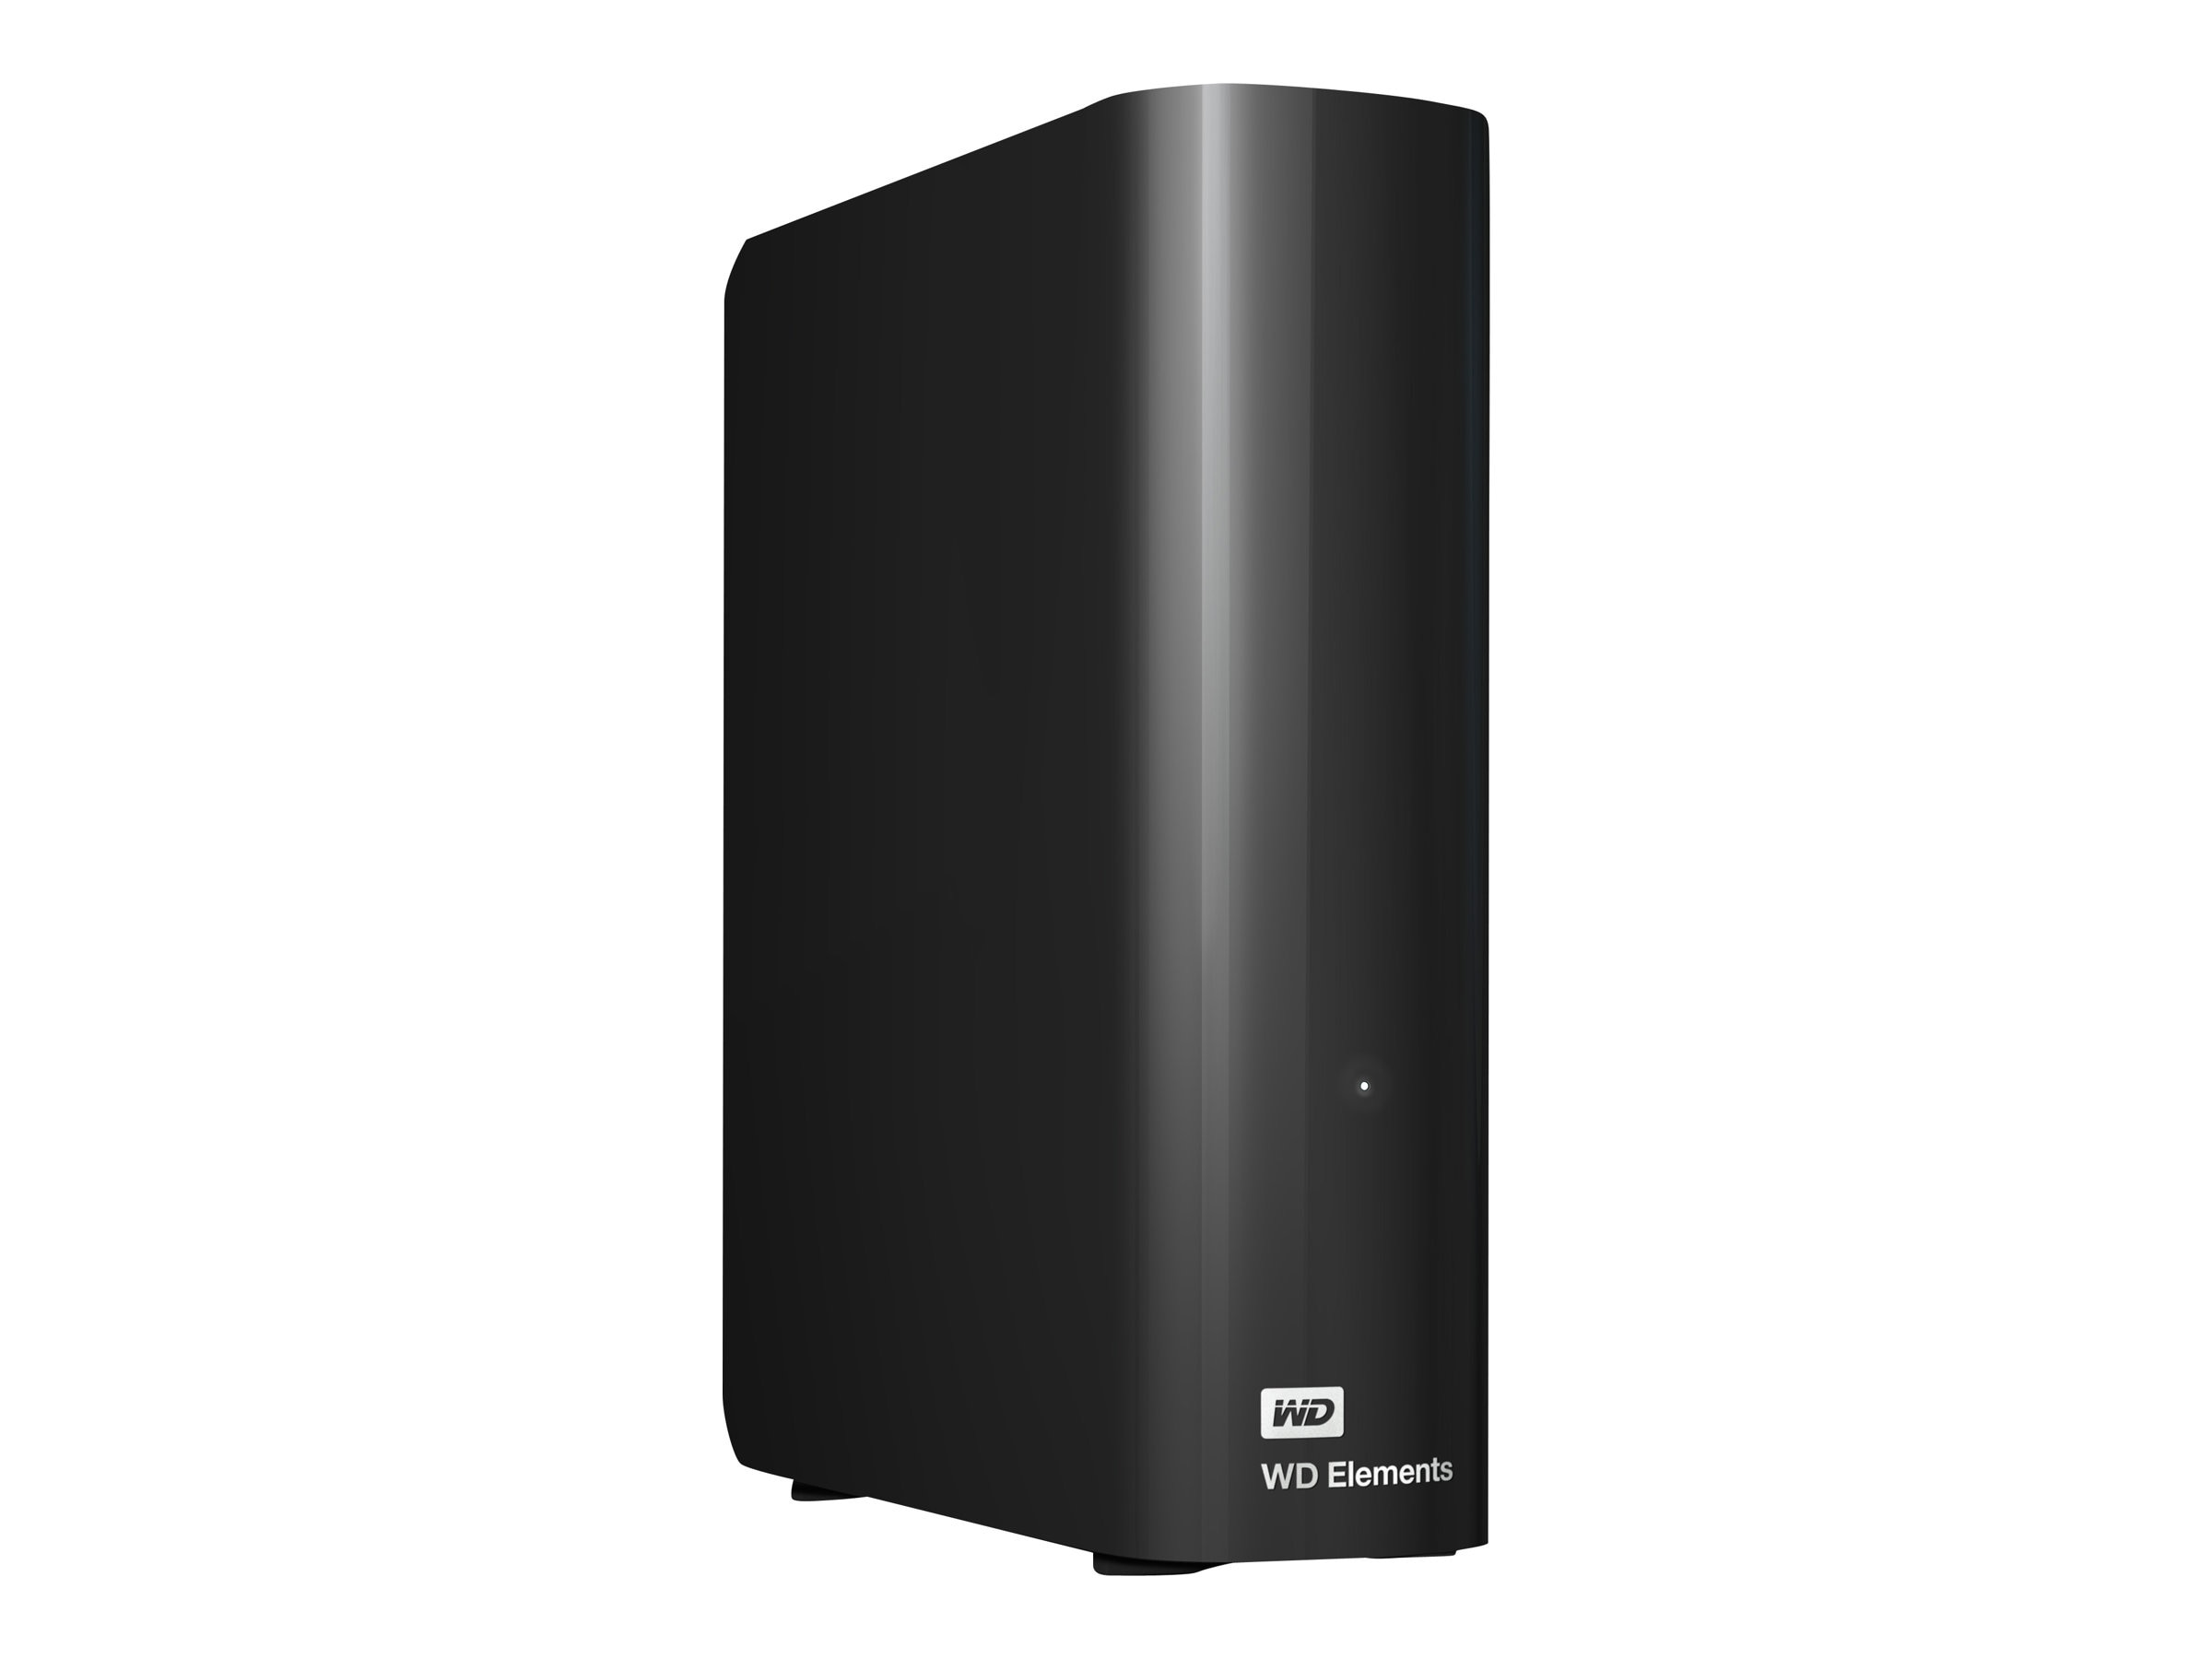 WD 4TB Elements Desktop USB 3.0 External Hard Drive, WDBWLG0040HBK-NESN